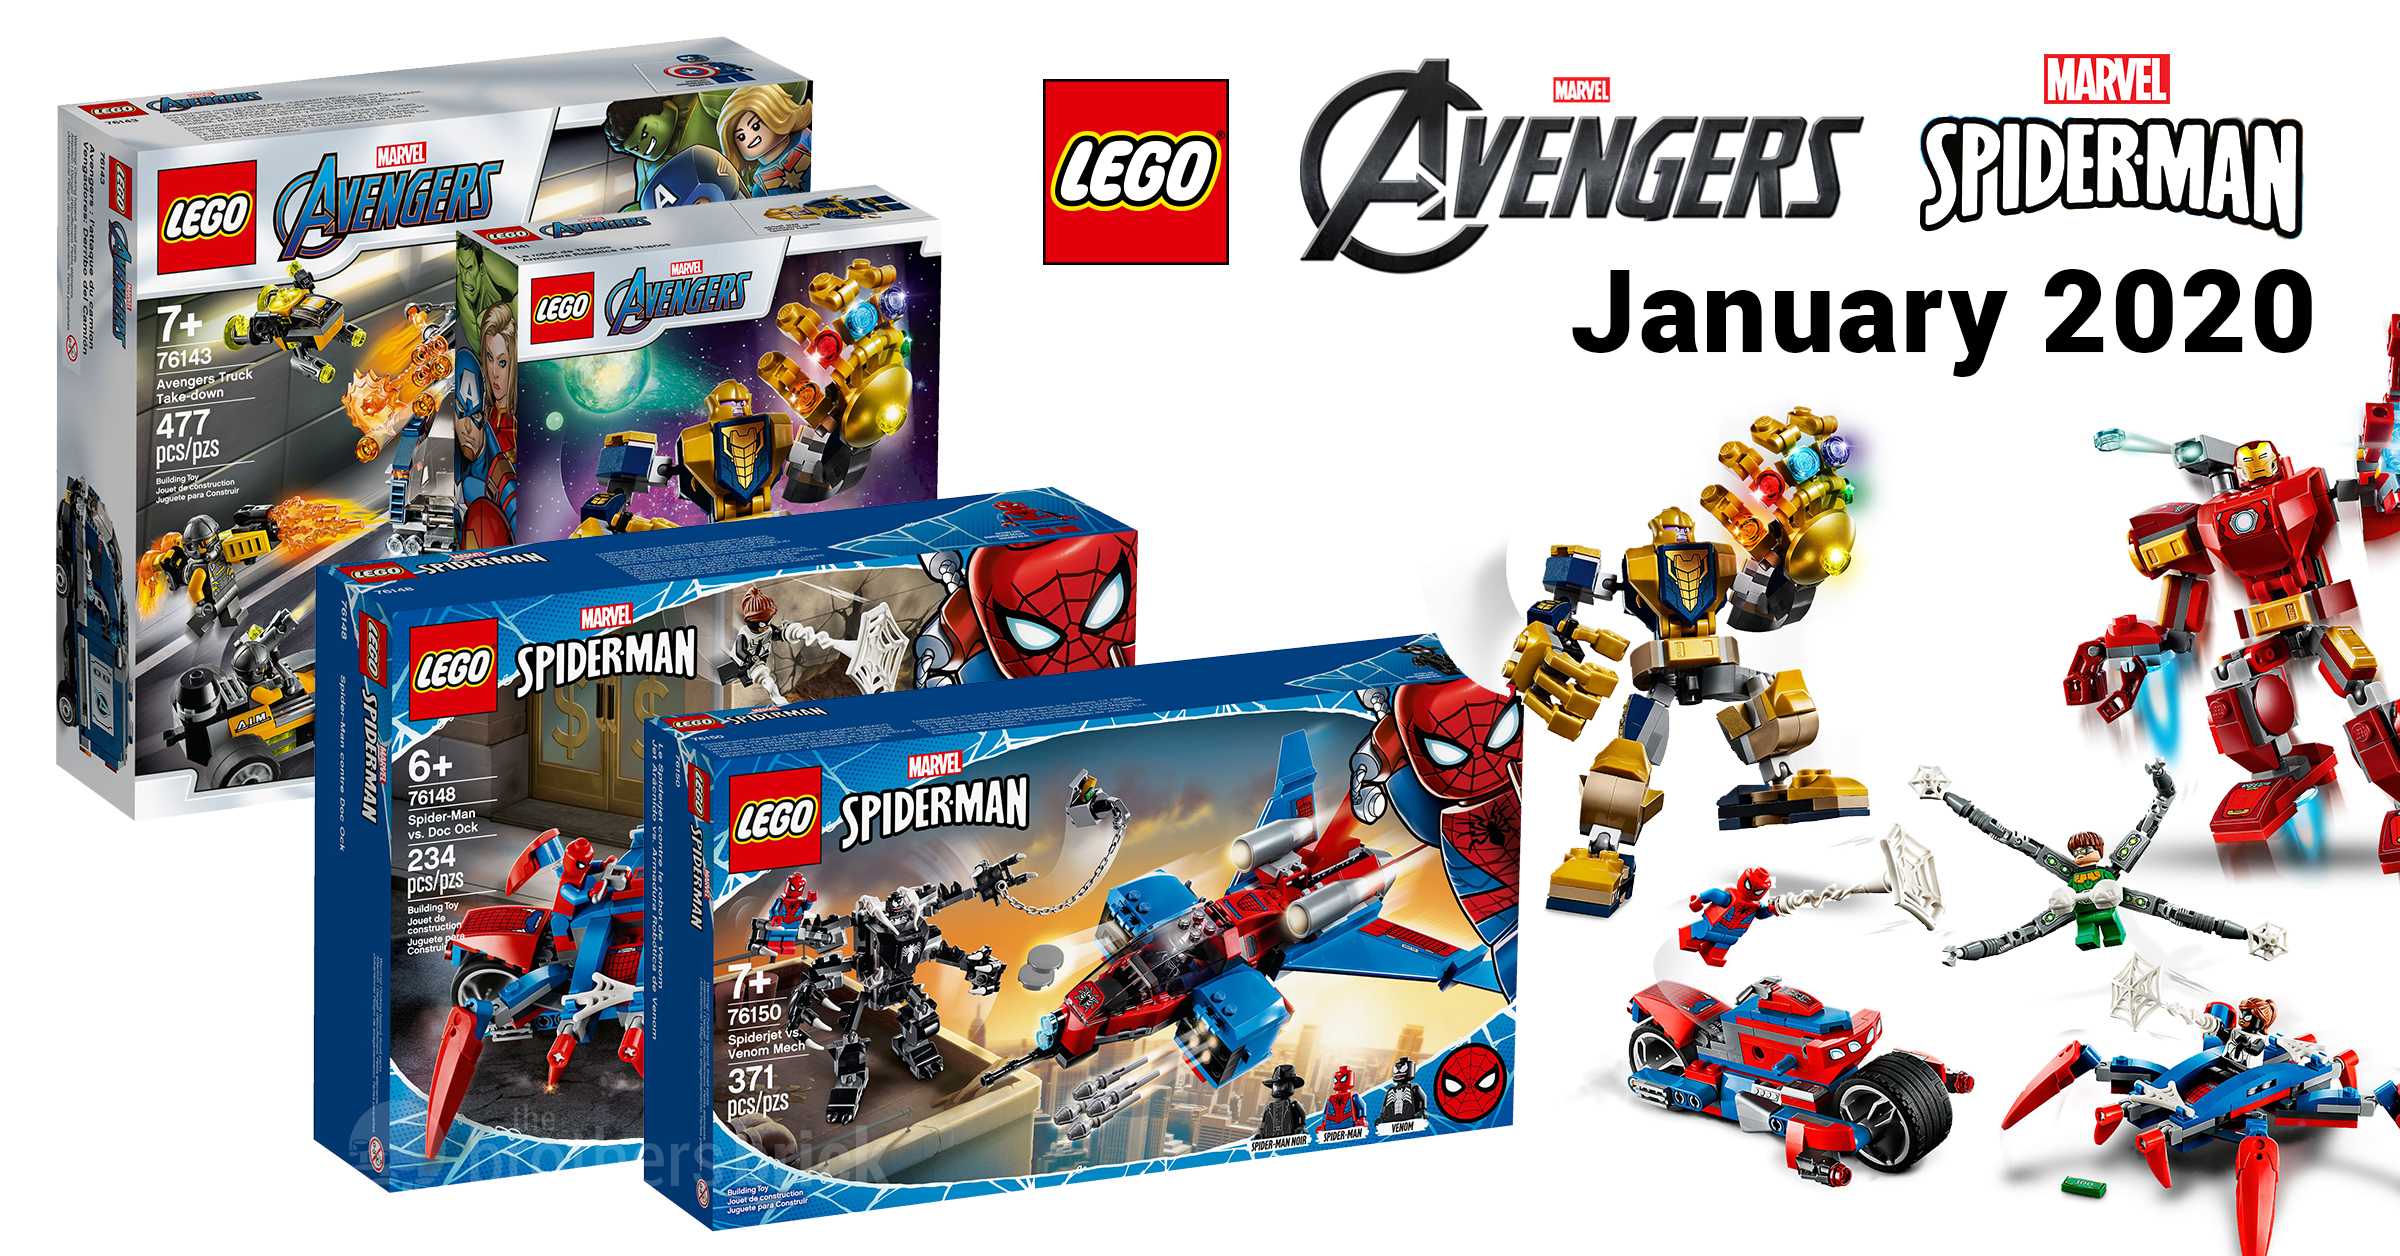 LEGO reveals 8 new Marvel sets from Avengers and Spider-Man [News]